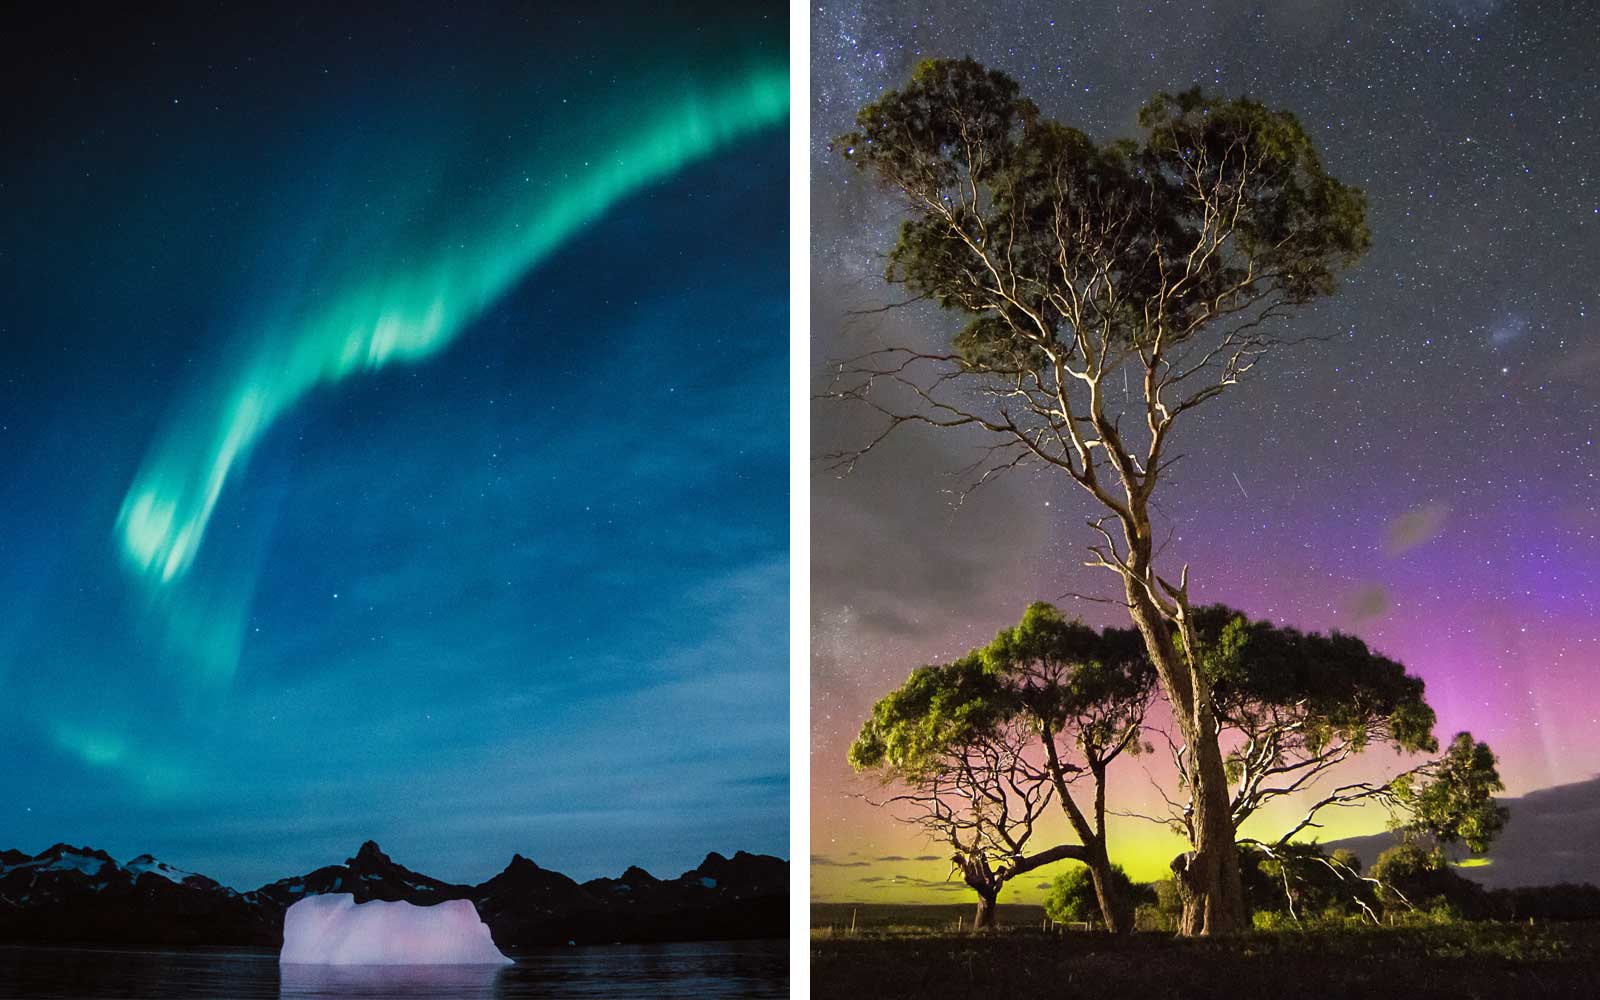 Northern lights in Greenland and Southern Lights in Australia